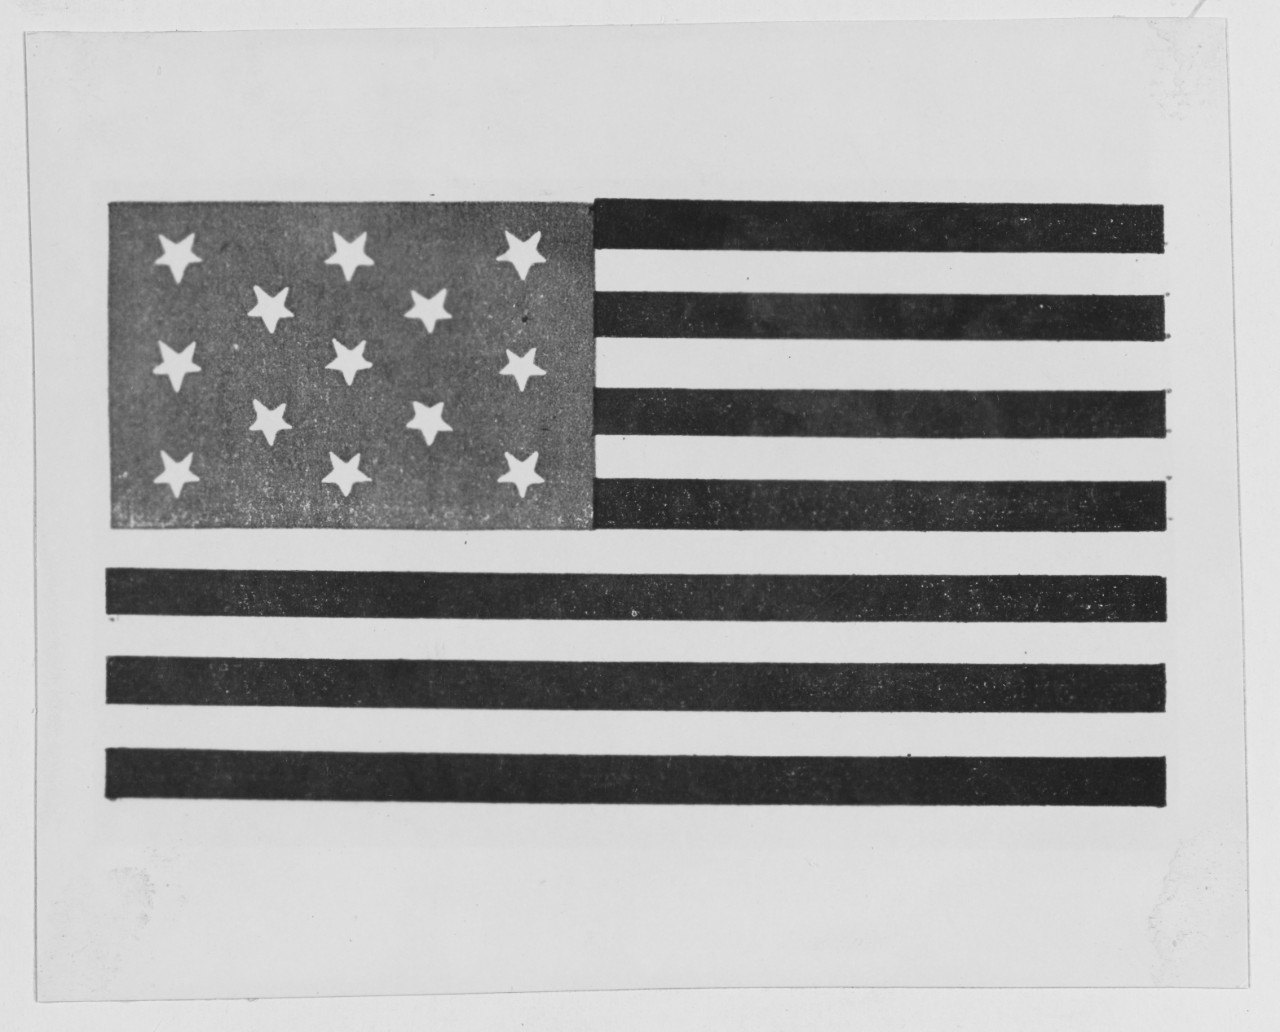 United States Flag between 1775-1795.